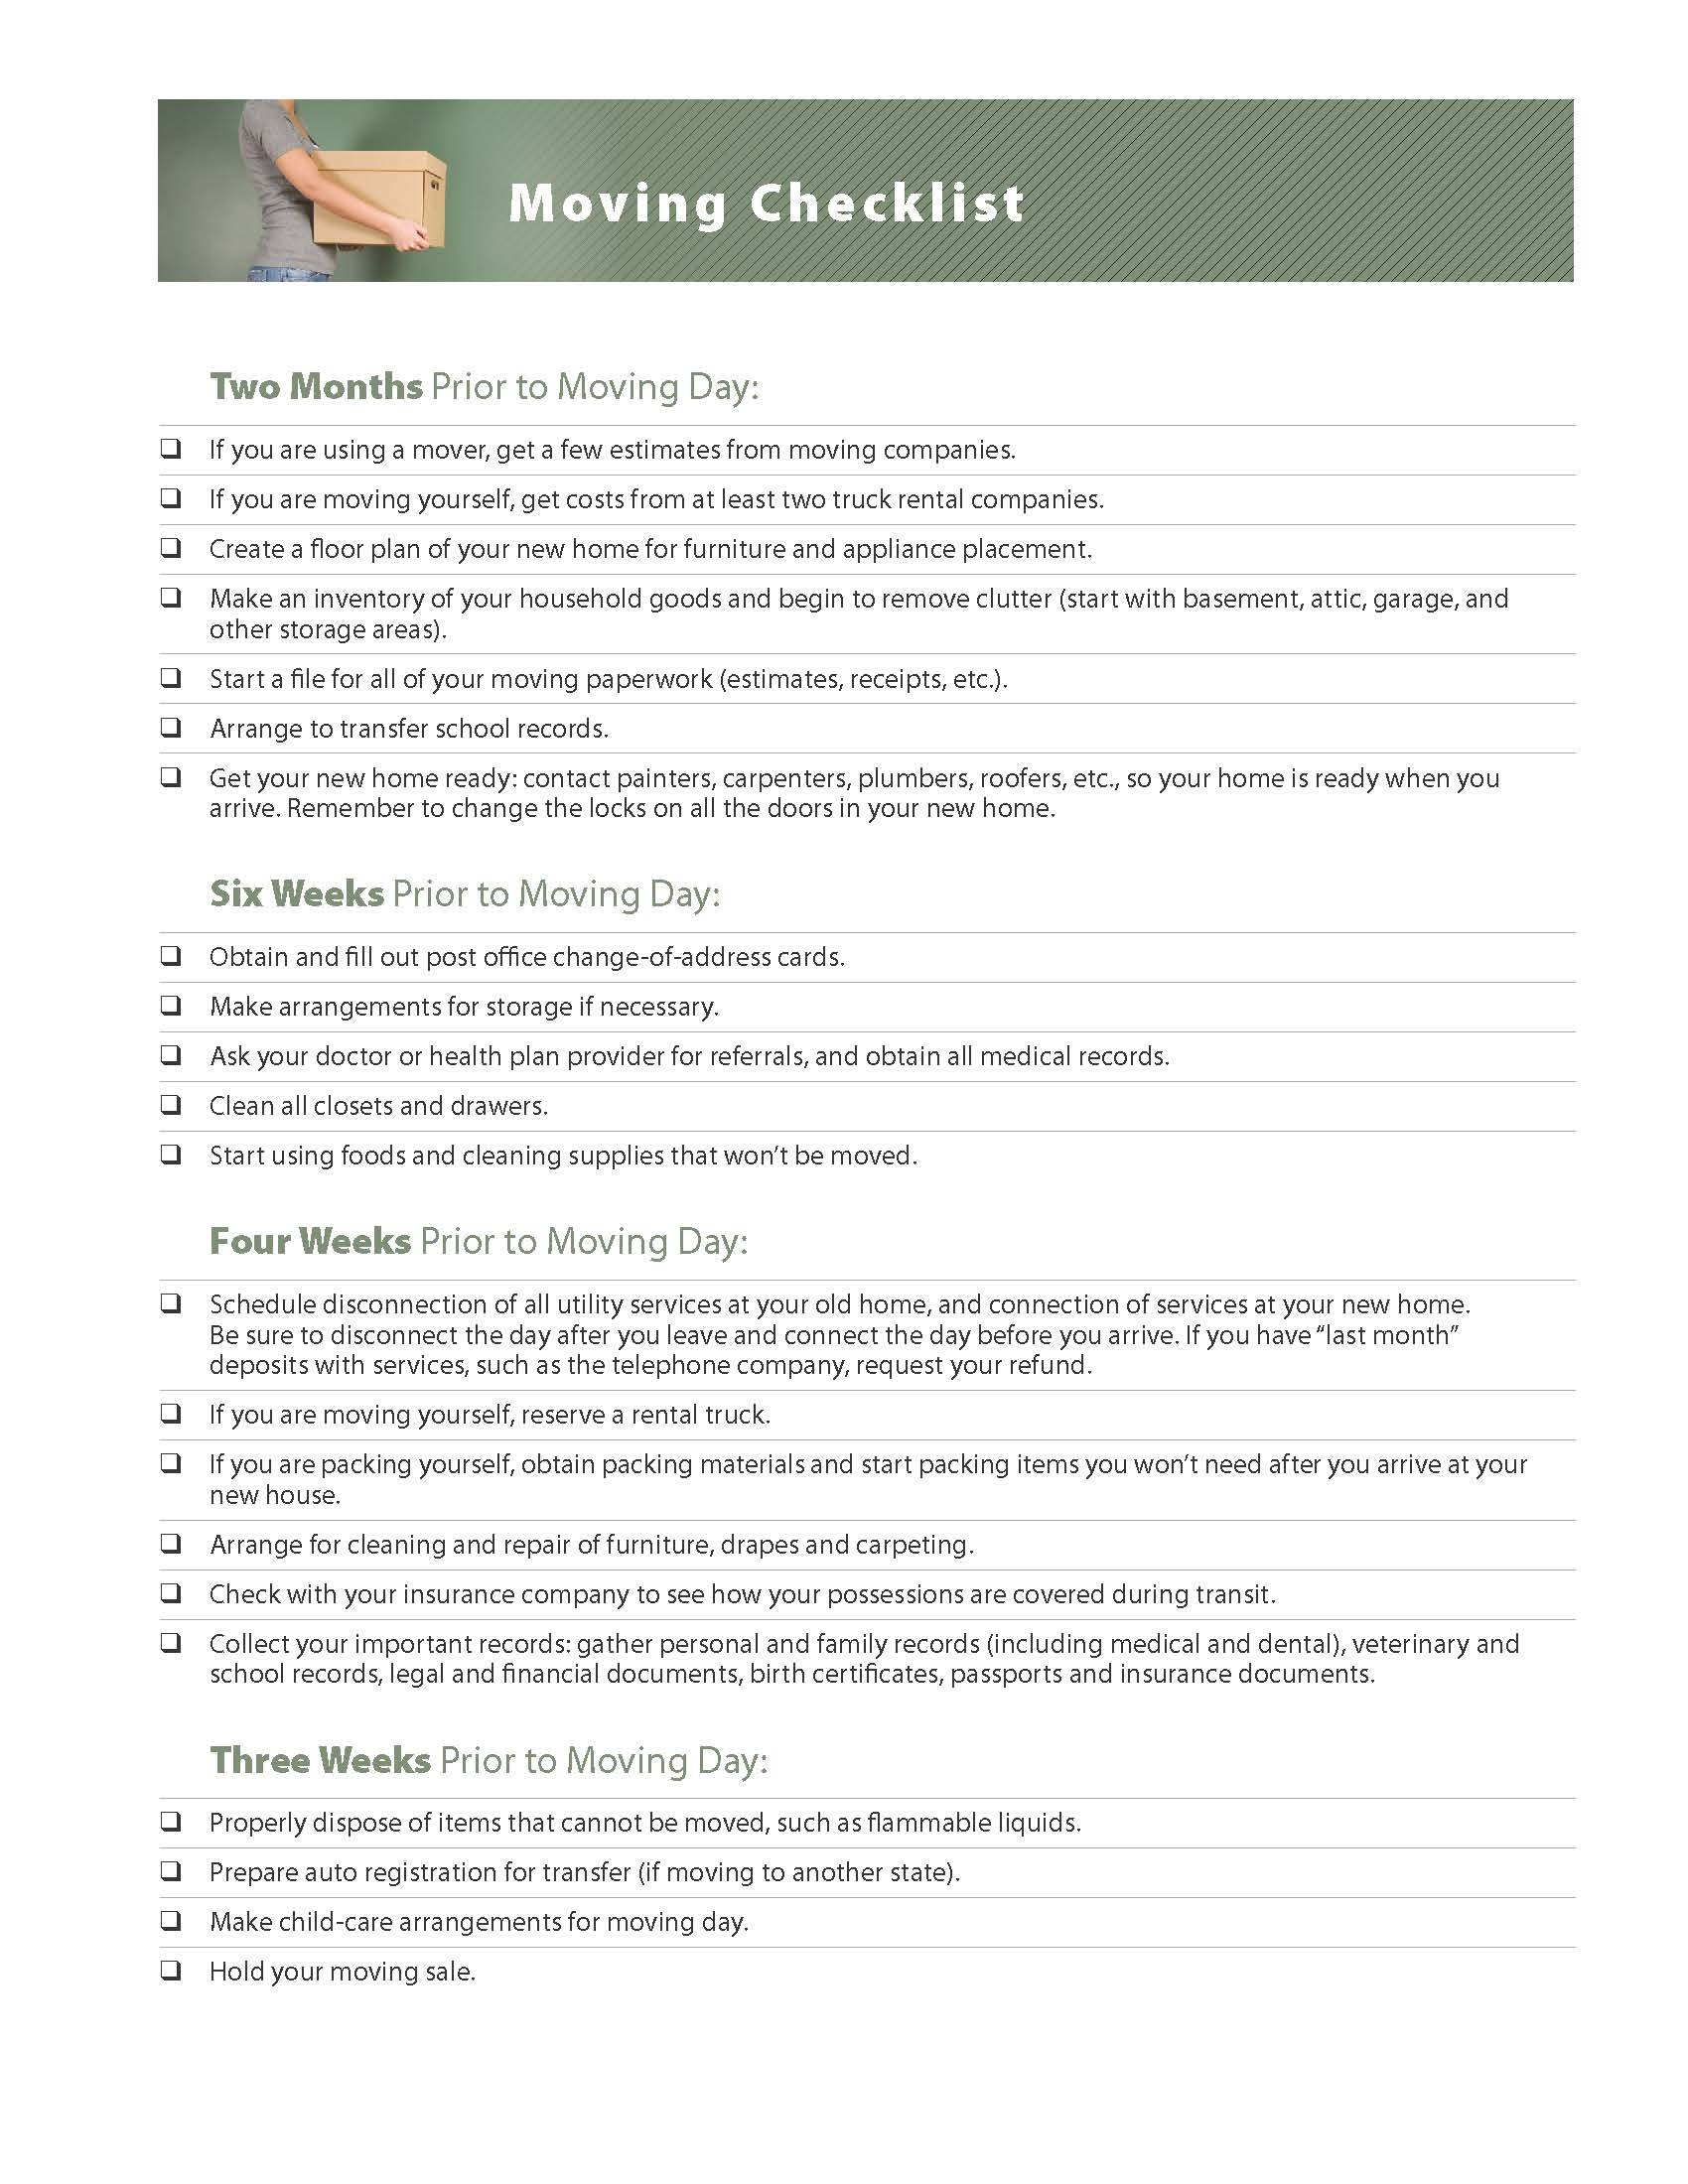 Moving Checklist – Moving Checklist